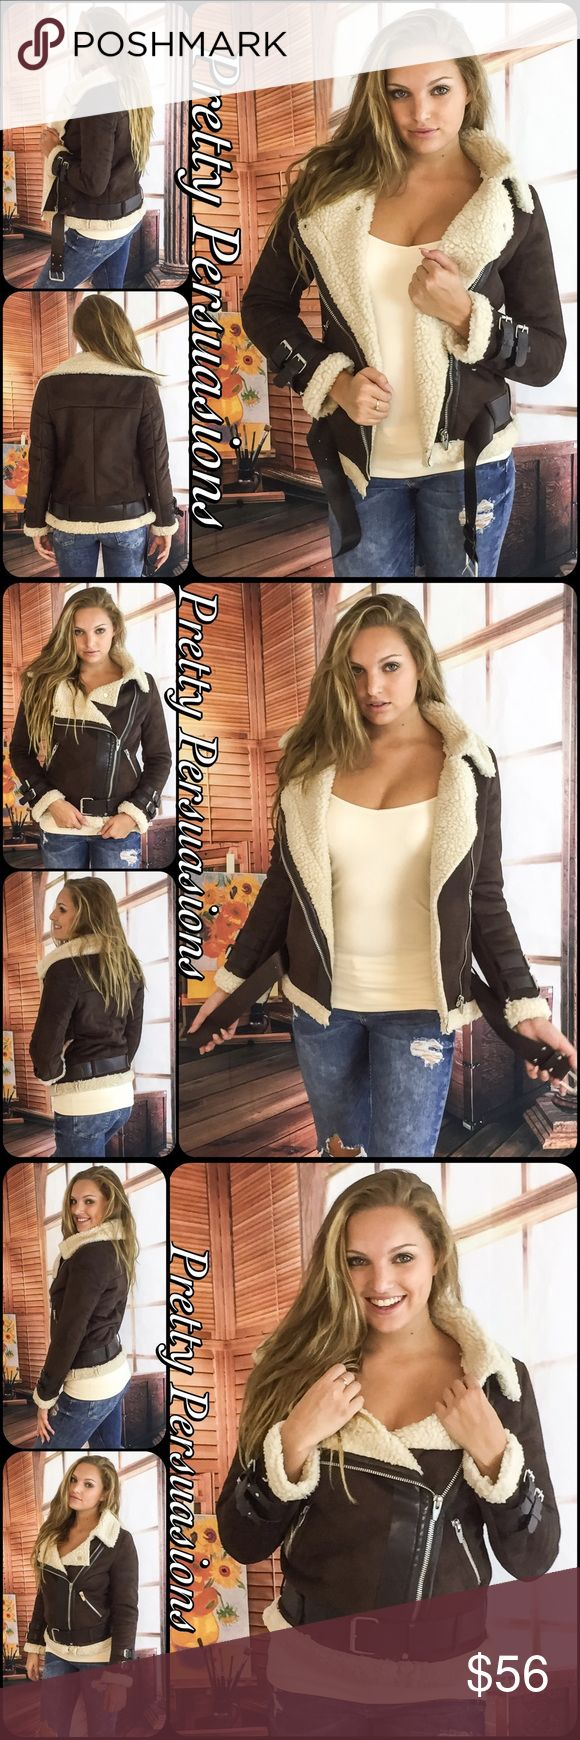 "NWT Faux Suede & Shearling Moto Utility Jacket Available in S, M, L Measurements taken from a Small  Length: 28"" Bust: 36""  Waist: 36""  Viscose Blend  Features • zip front • long sleeved • faux suede exterior • faux shearling lined • warm, soft & comfortable high quality material • buckle accents at waist & cuffs  NOTE: Size up for a less fitted/looser fit; Model wearing a Small  Bundle discounts available No pp or trades  Item # 1/109210560BSJ suede leather utility jacket Pretty Persuasions…"